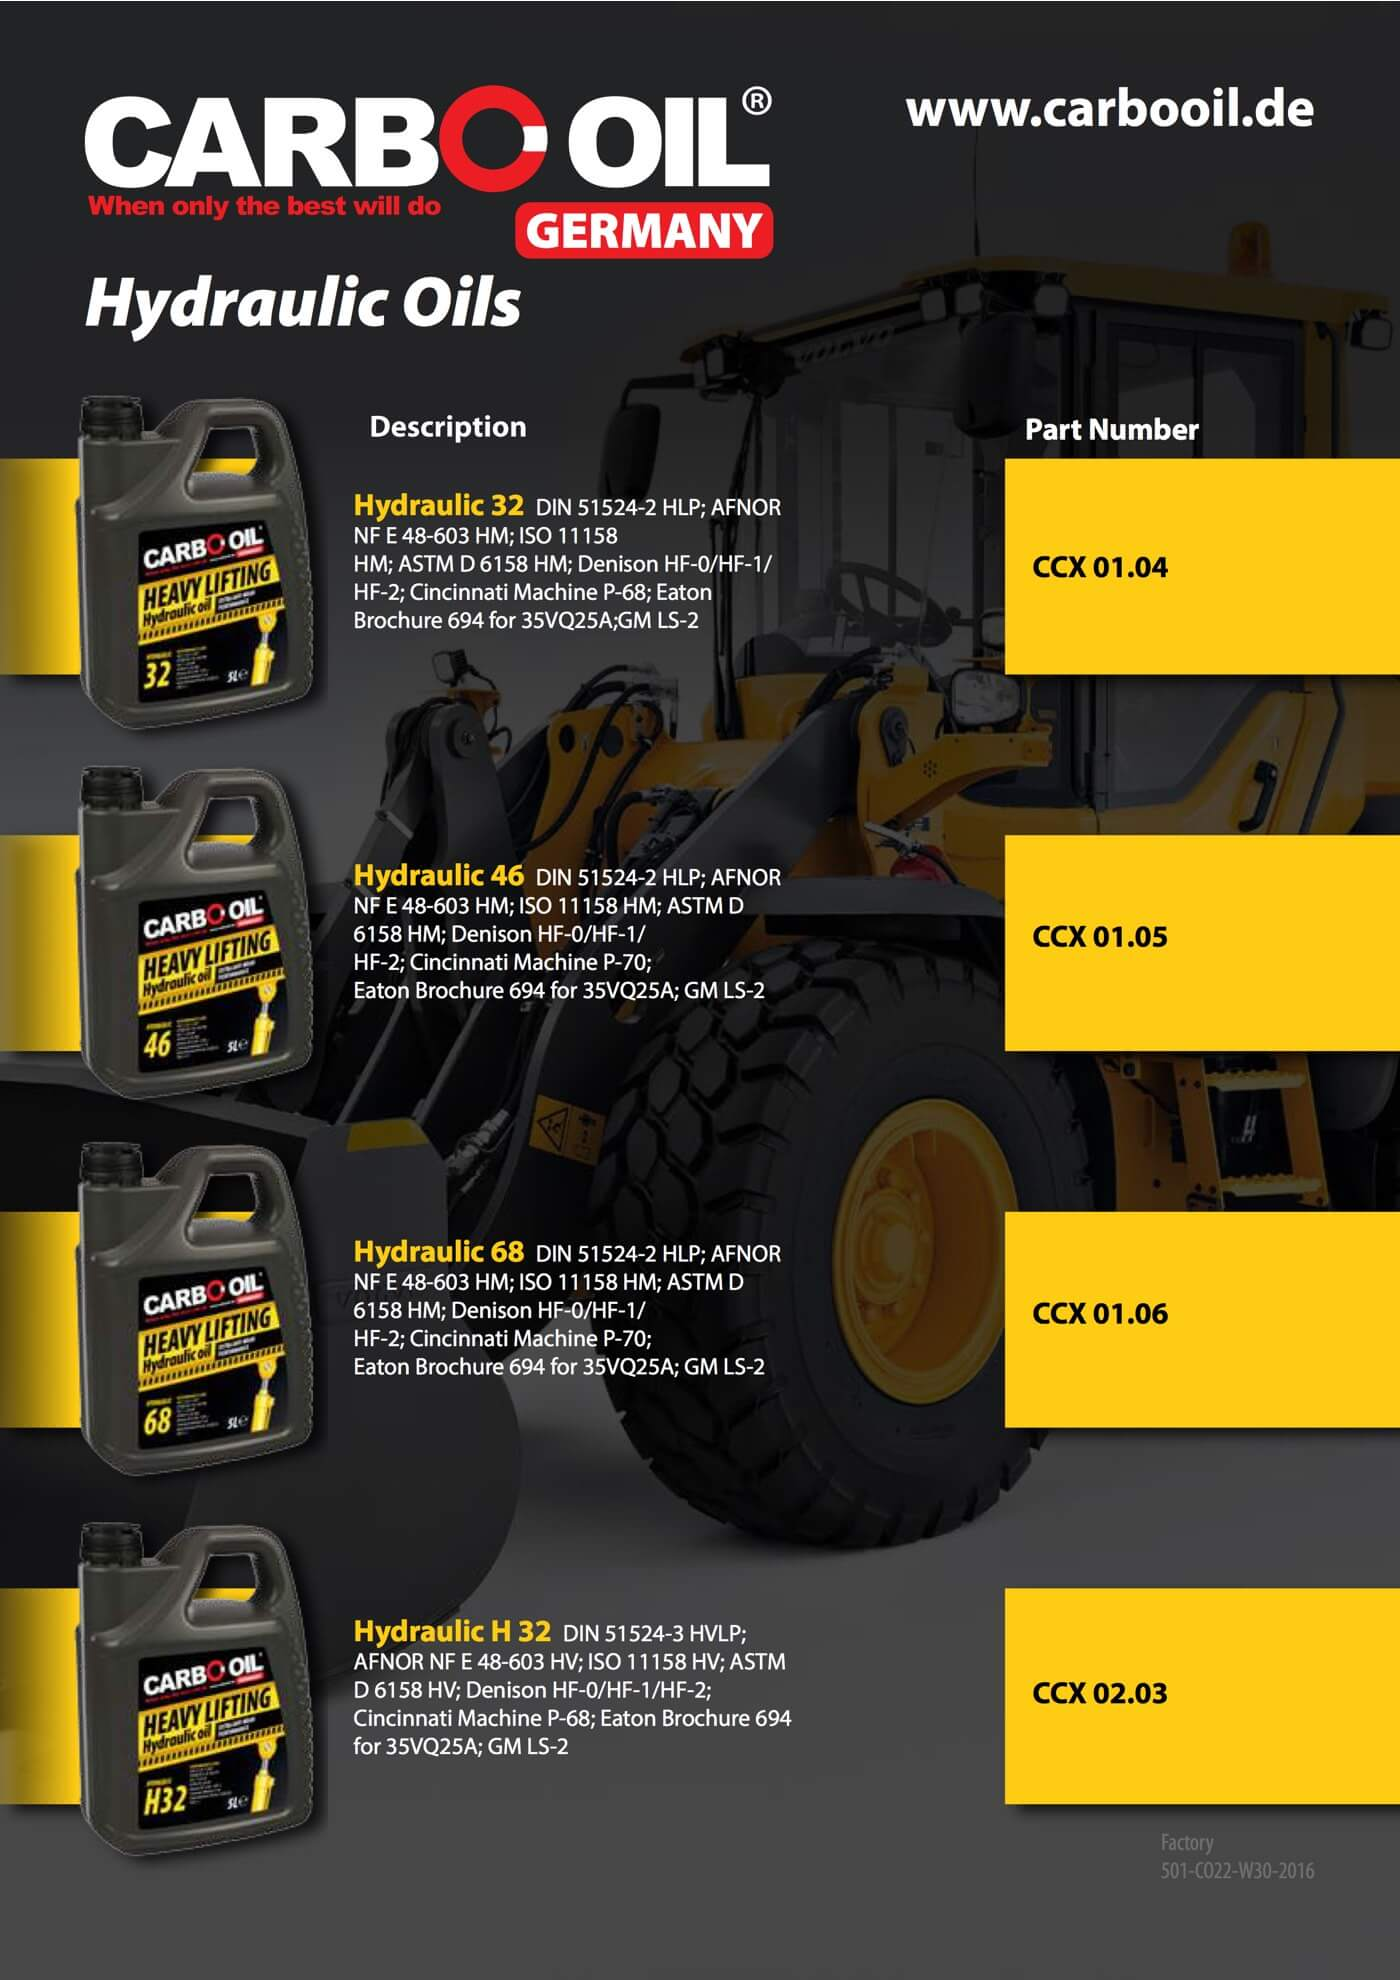 Carbooil Hydraulics page 1